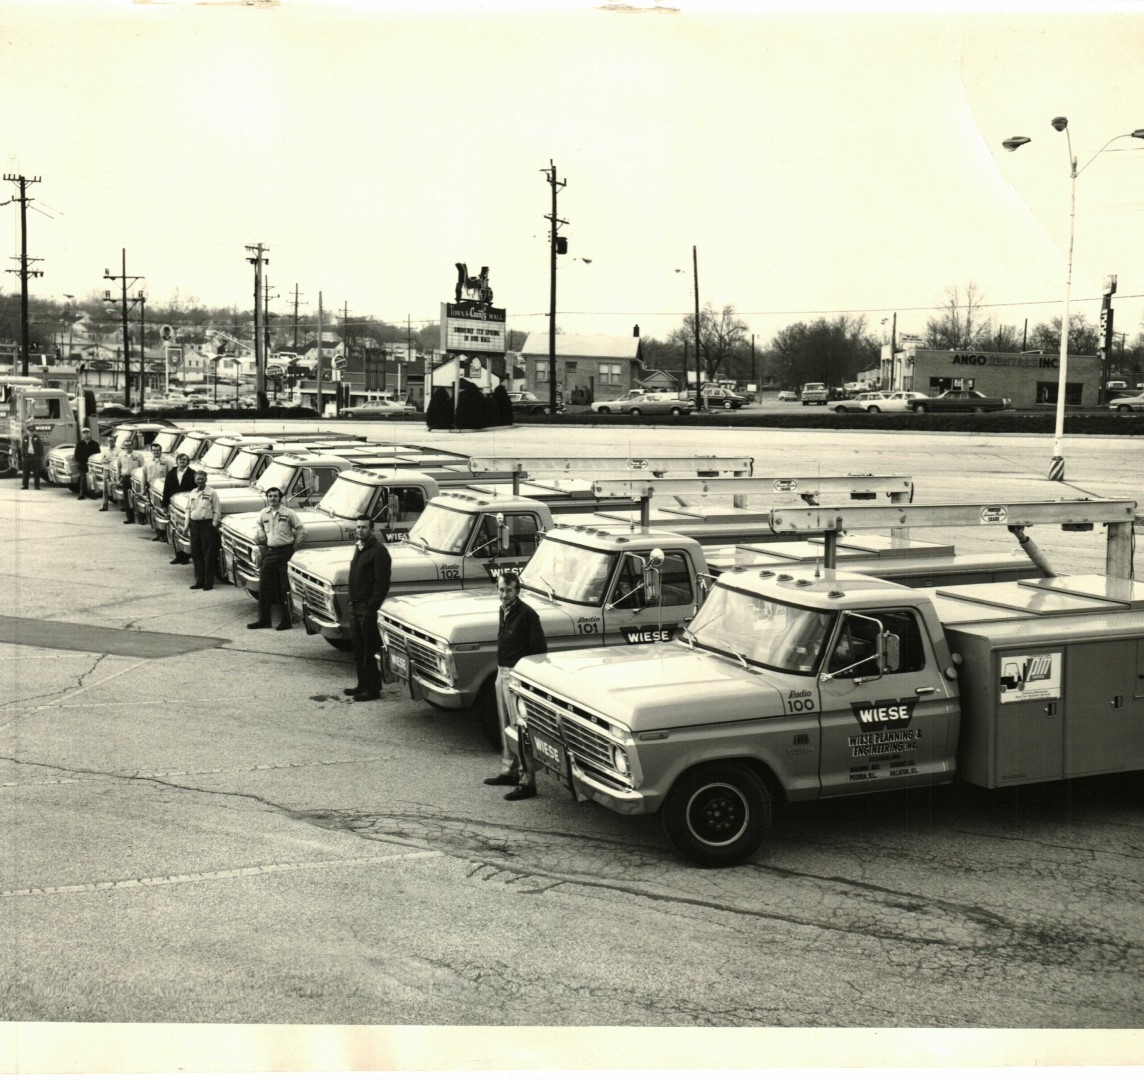 Wiese Employees Ready With Their Trucks For A Workday